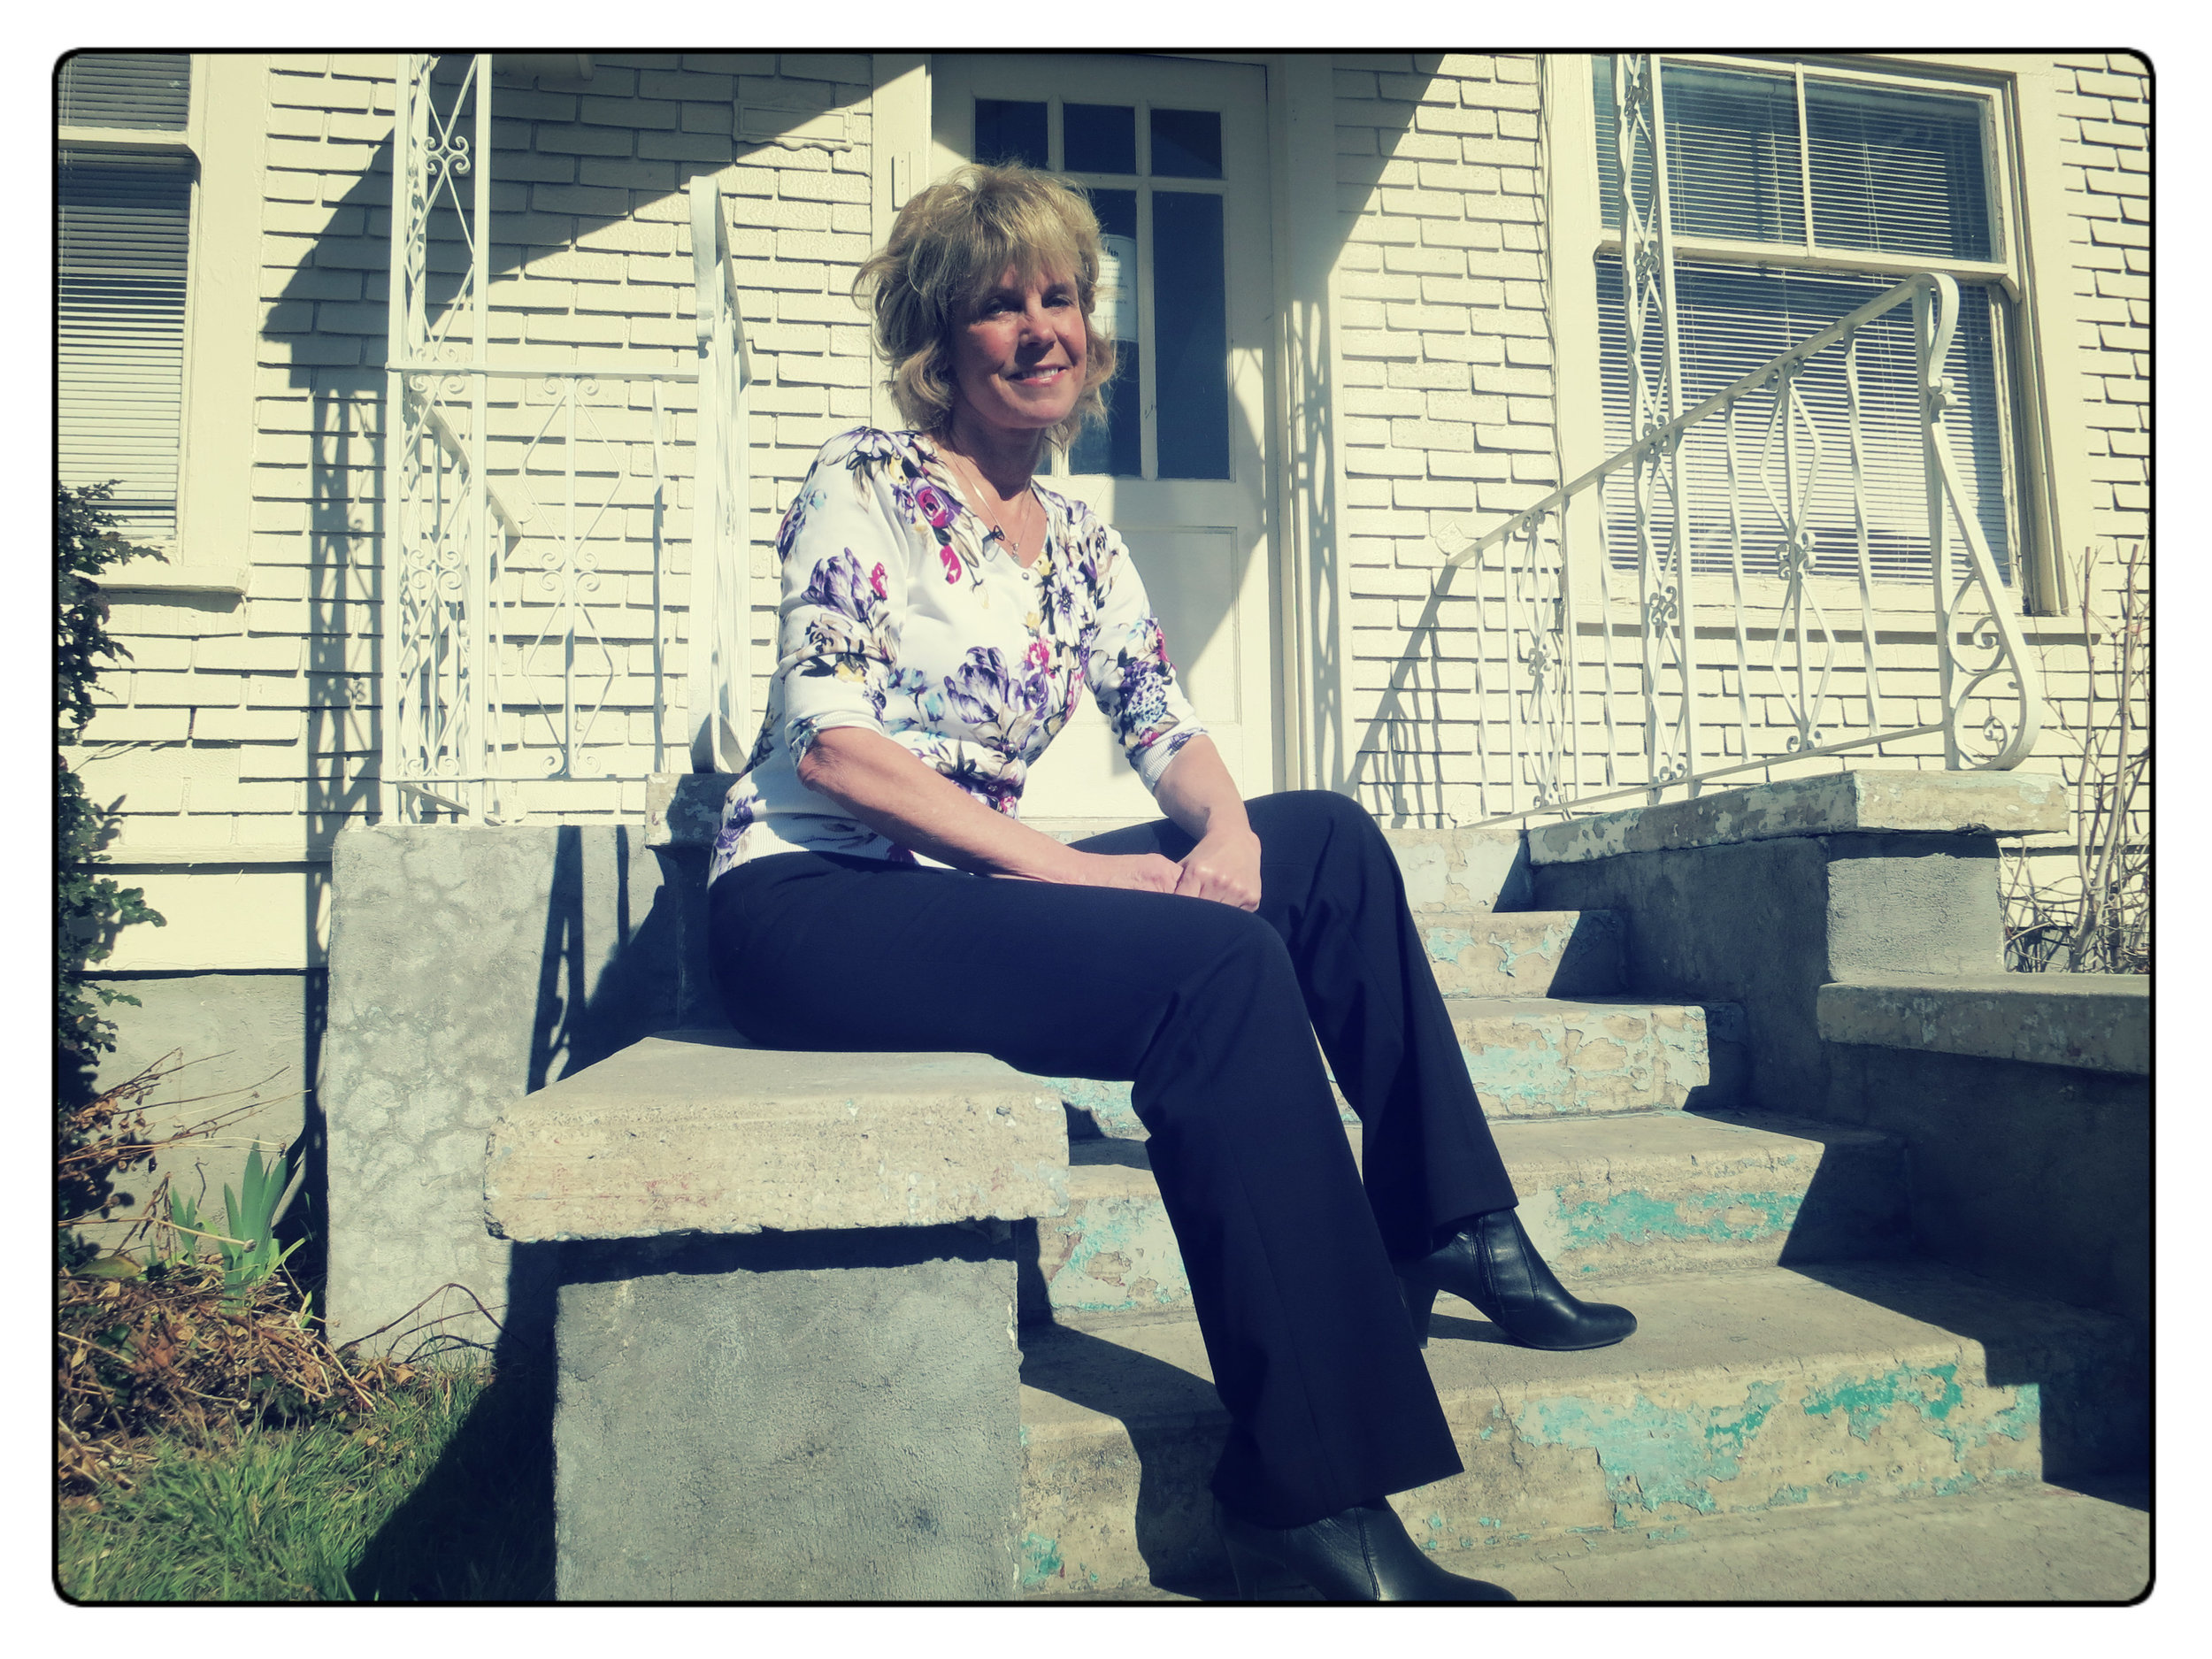 Lynette Eddy sits in front of the You, a resource center for at-risk, runaway and homeless kids which opened last year.